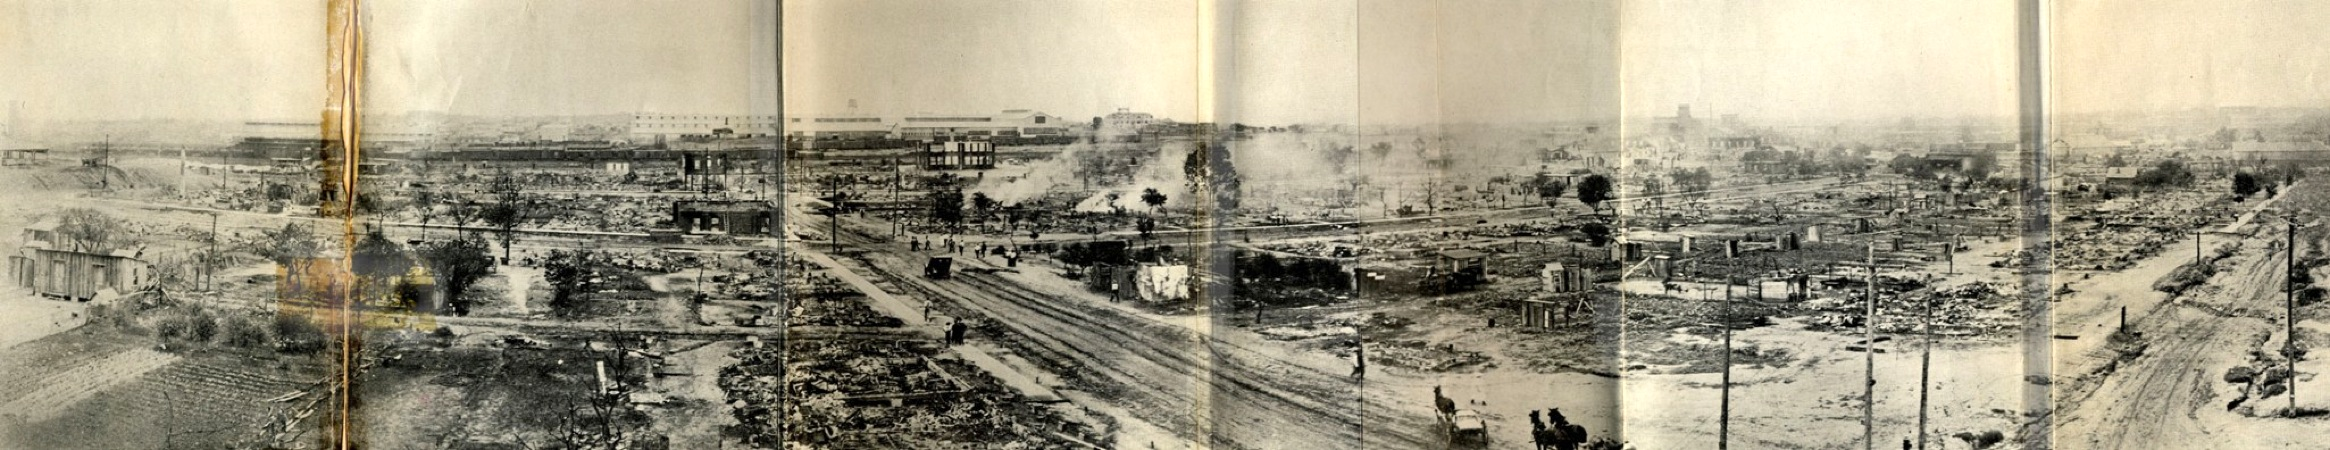 Greenwood, Oklahoma before the race riots